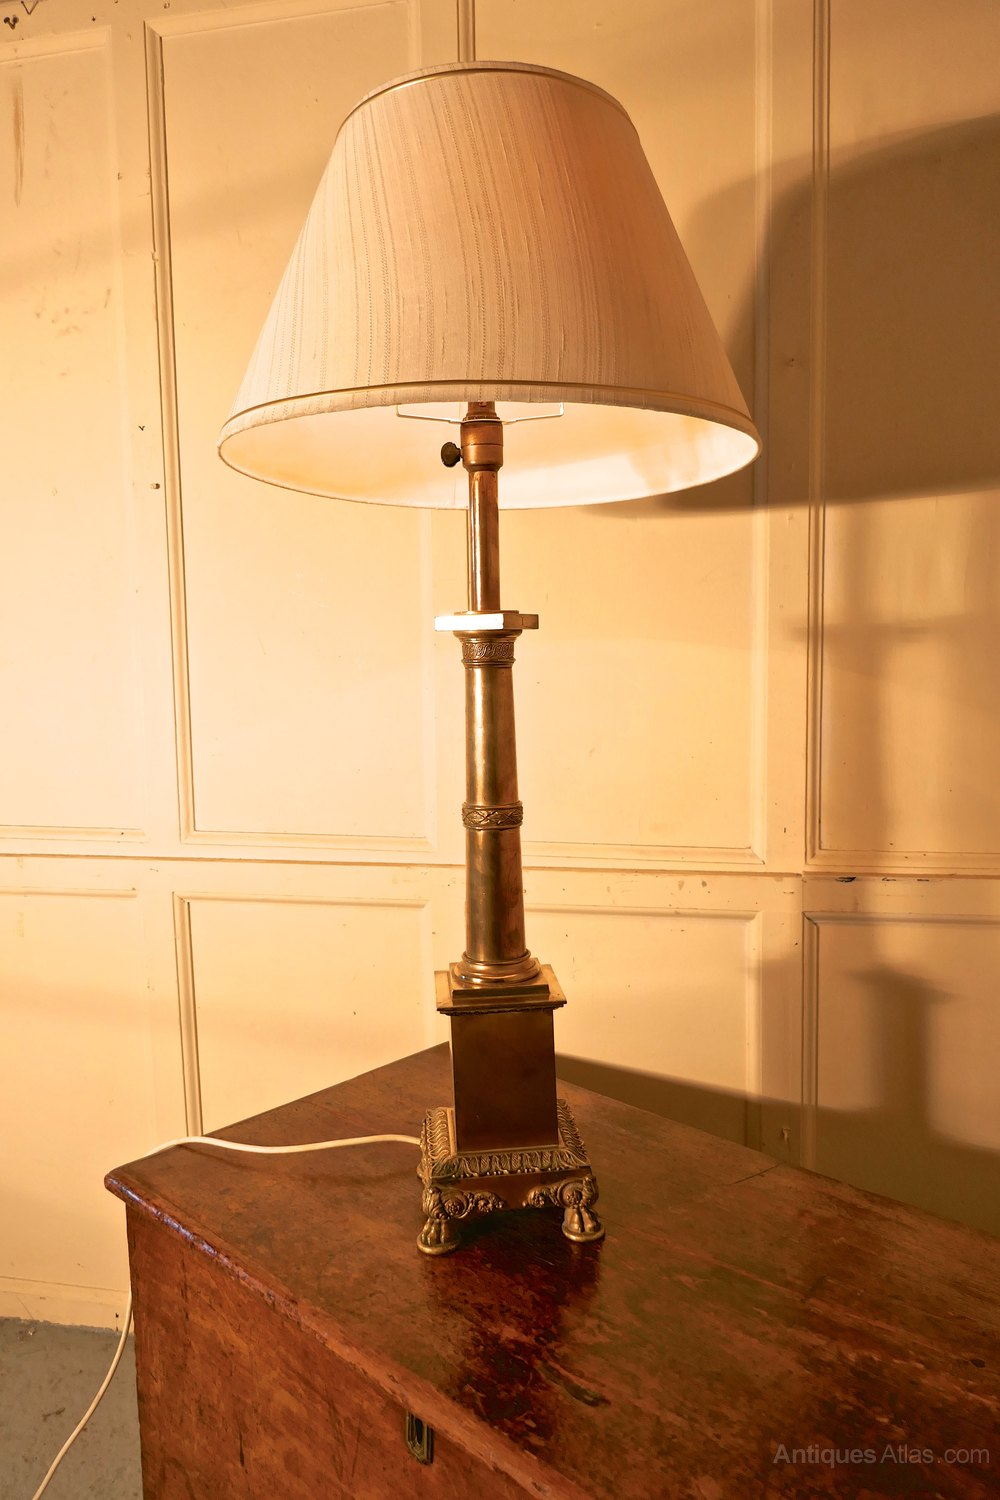 antiques atlas tall brass table lamp. Black Bedroom Furniture Sets. Home Design Ideas